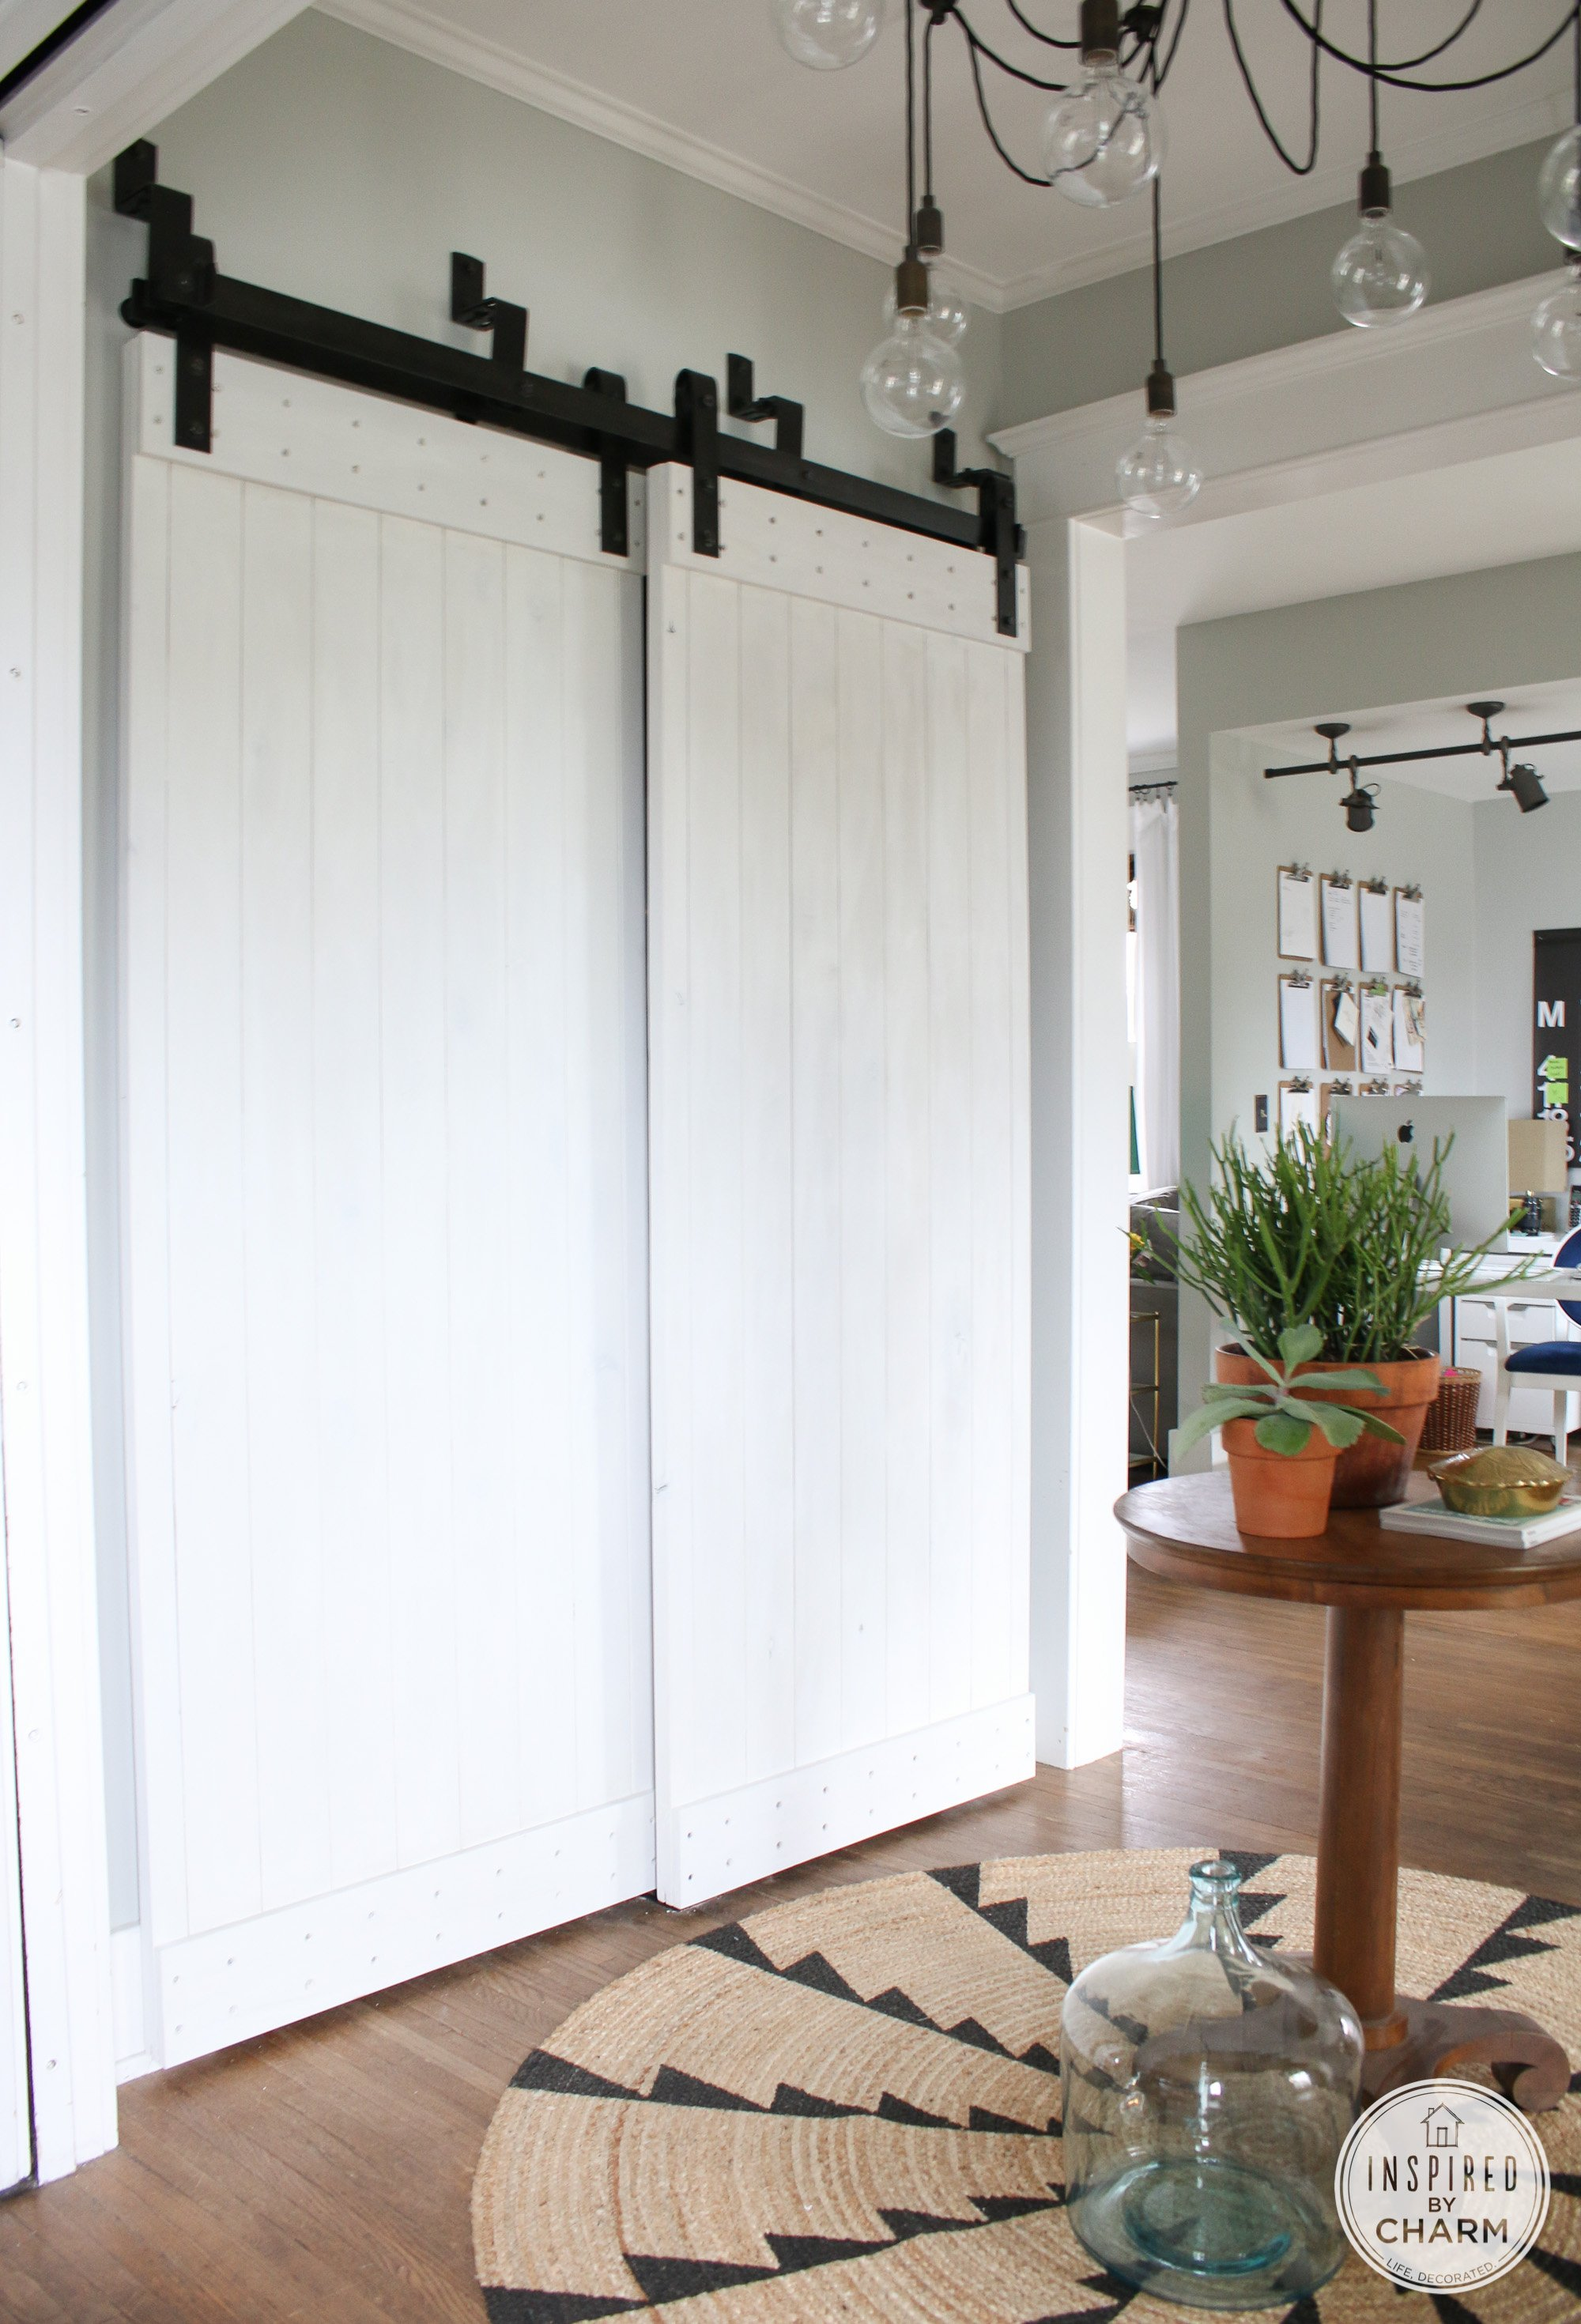 Bypass Barn Door Painted Barn Doors Inspired By Charm